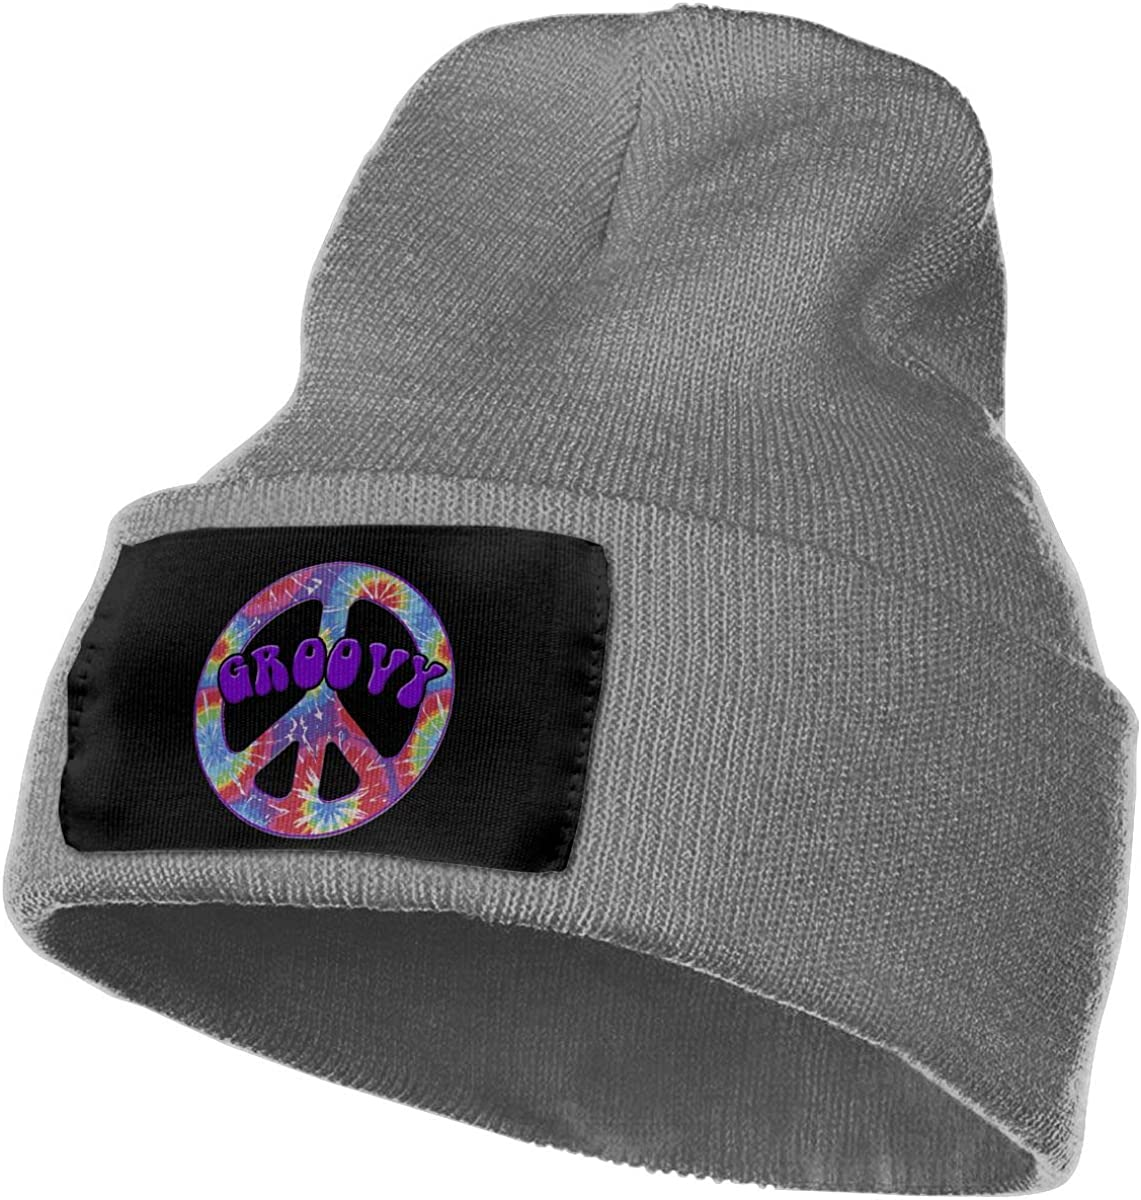 COLLJL-8 Unisex Eat Sleep Skiing Repeat Outdoor Fashion Knit Beanies Hat Soft Winter Skull Caps